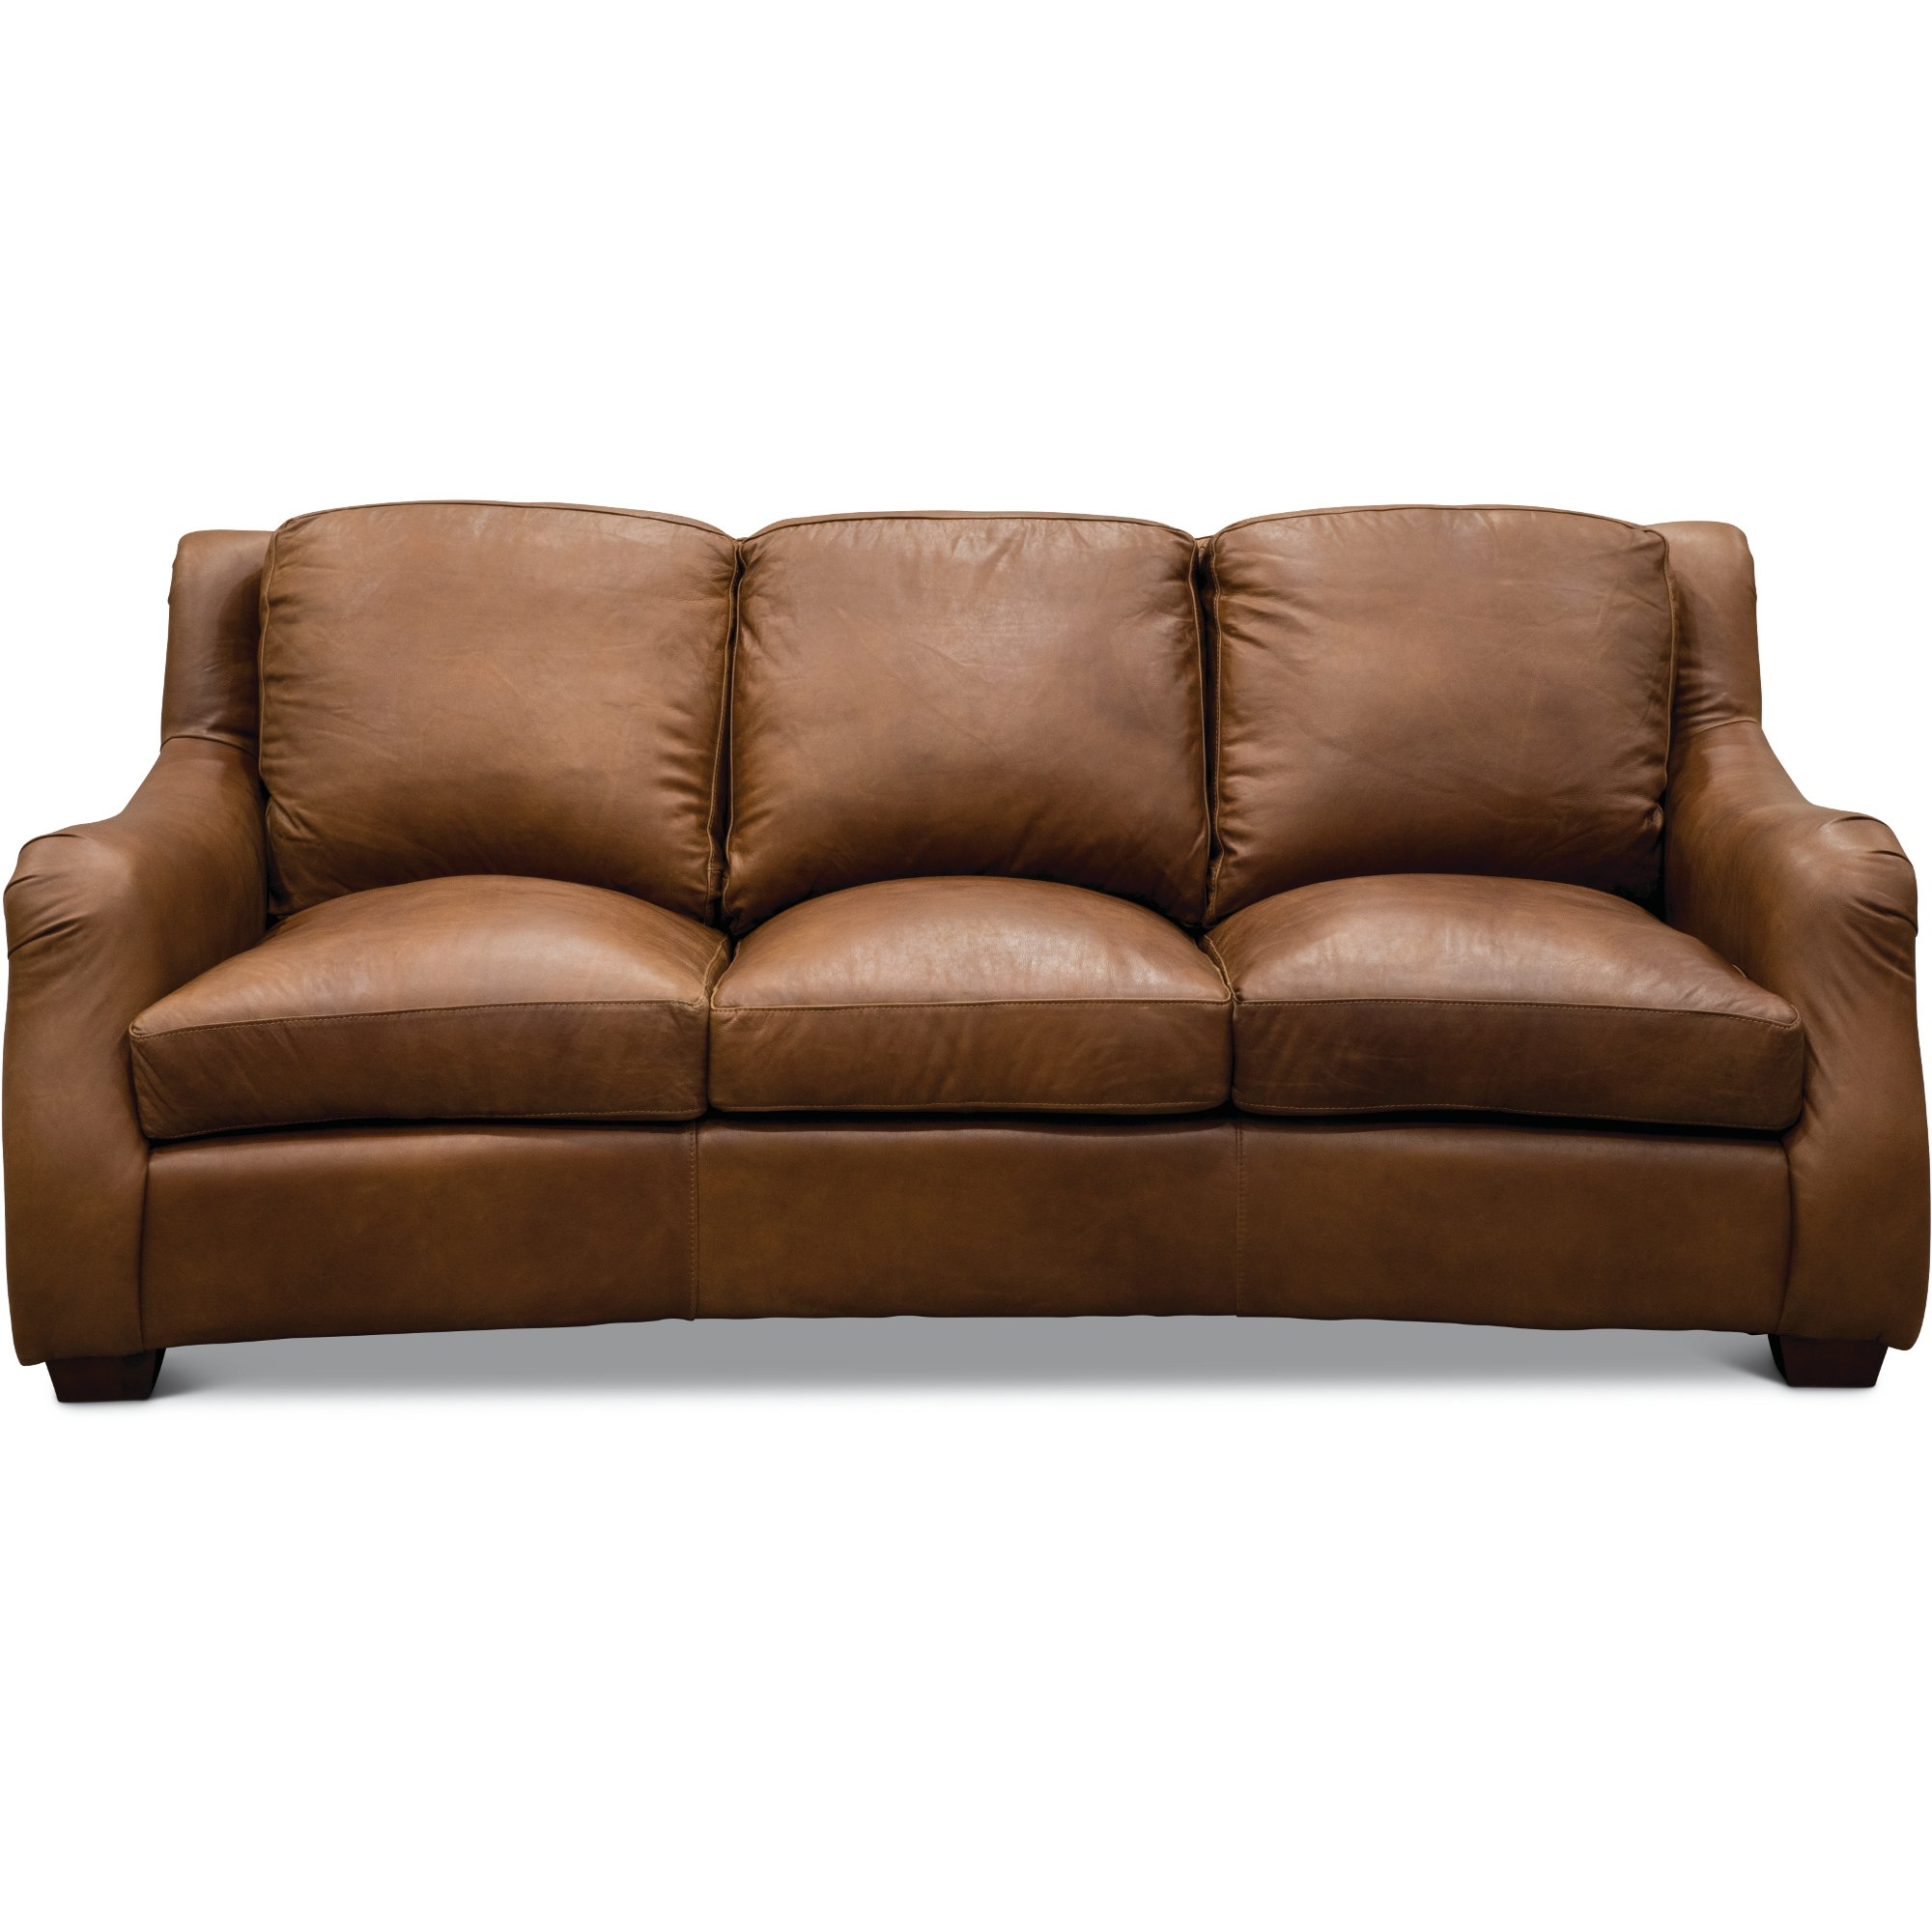 ... Traditional Natural Brown Leather Sofa   Carmel